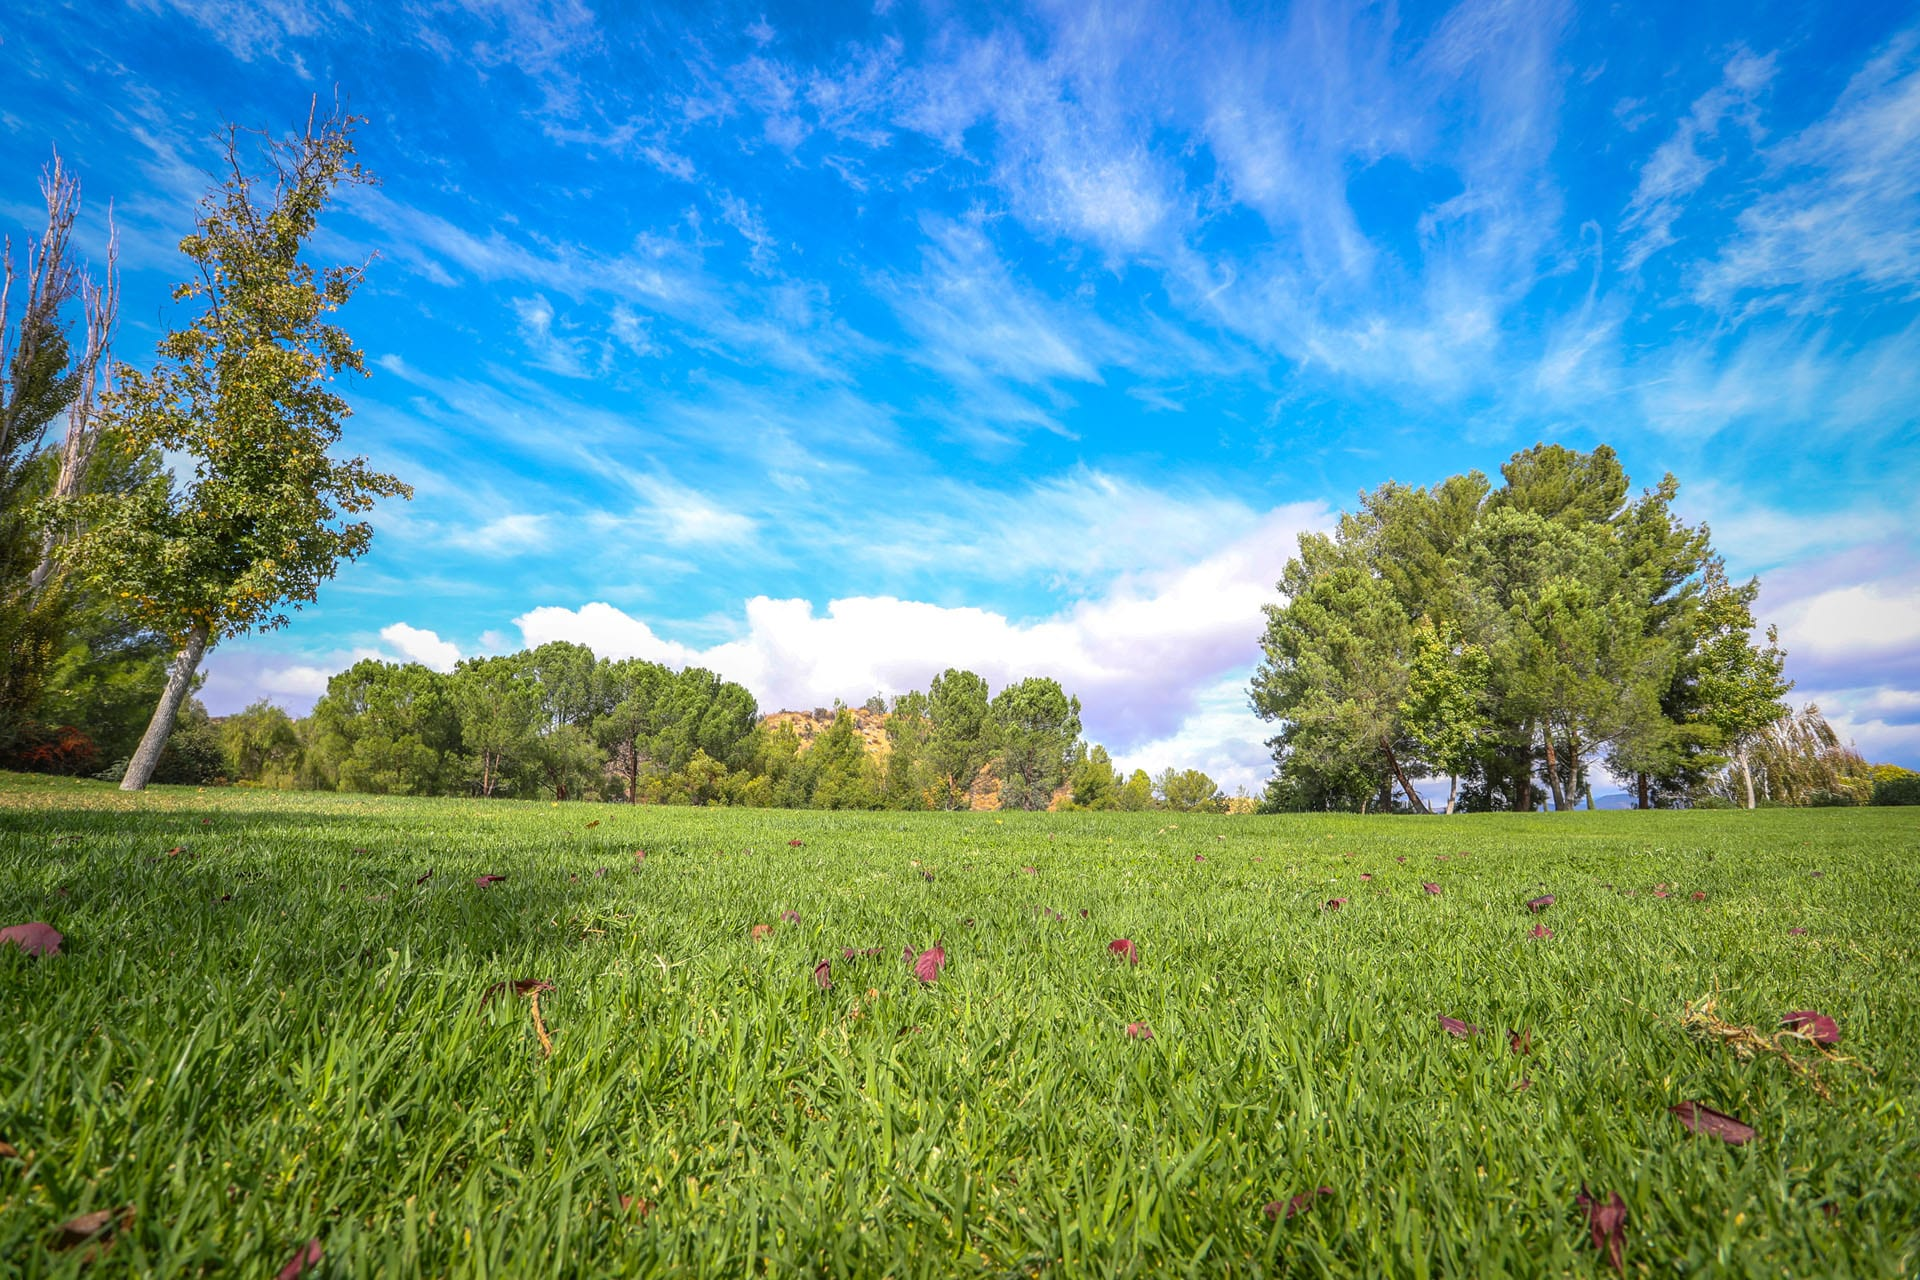 Bright green lawn, tree and sky